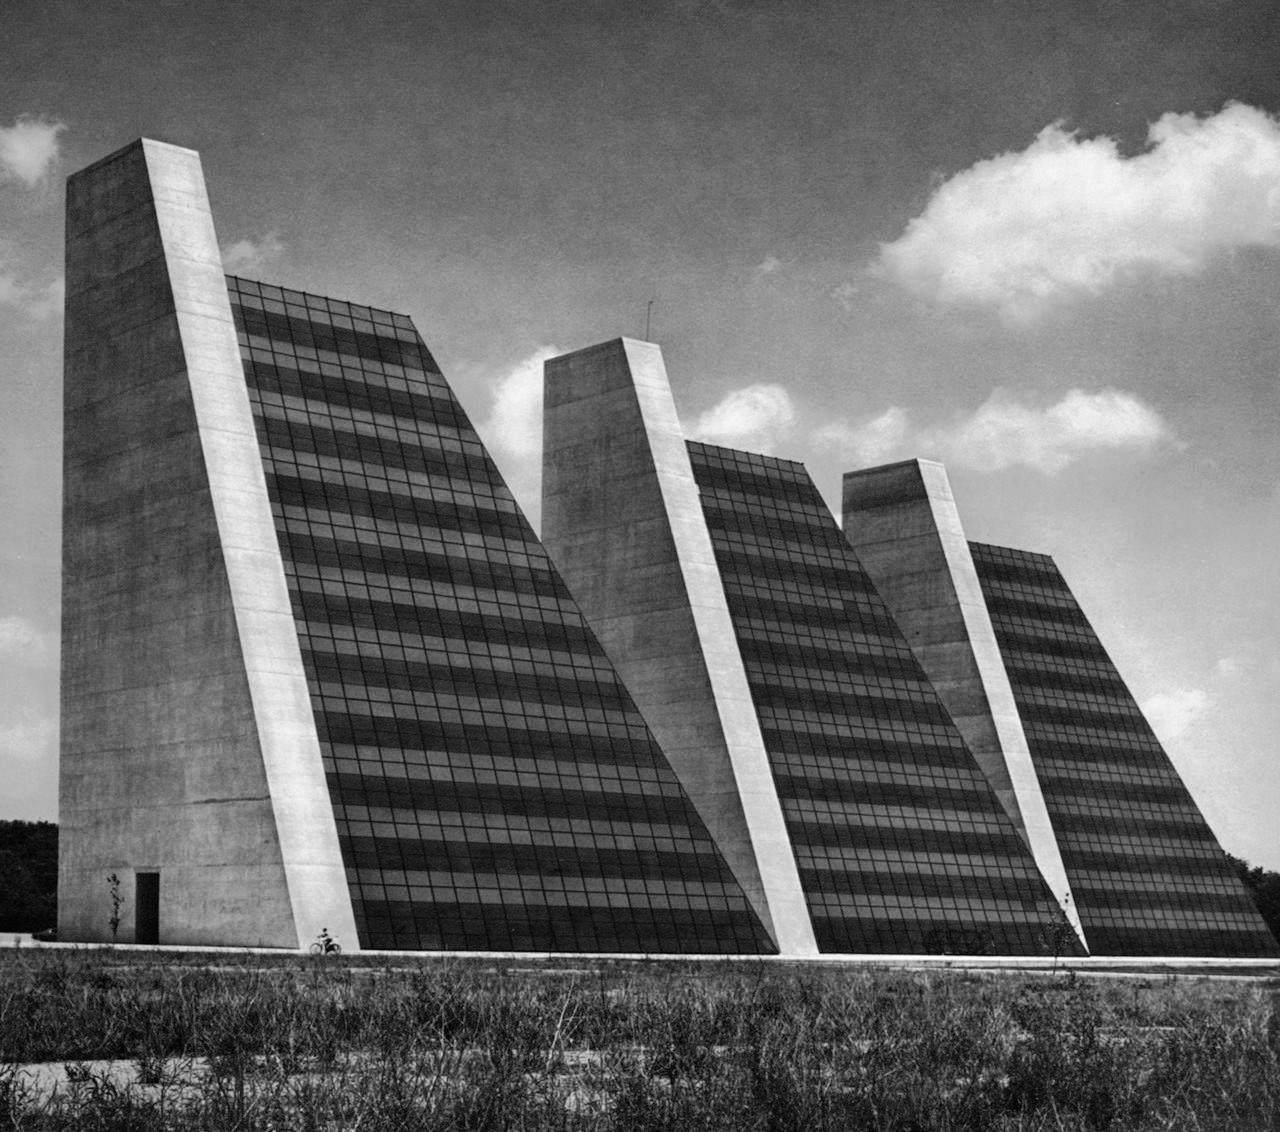 College Life Insurance Company Headquarters Indianapolis Indiana 1967 Kevin Roche John Dinkeloo Associates Brutalist Buildings Urban Architecture Life Insurance Companies